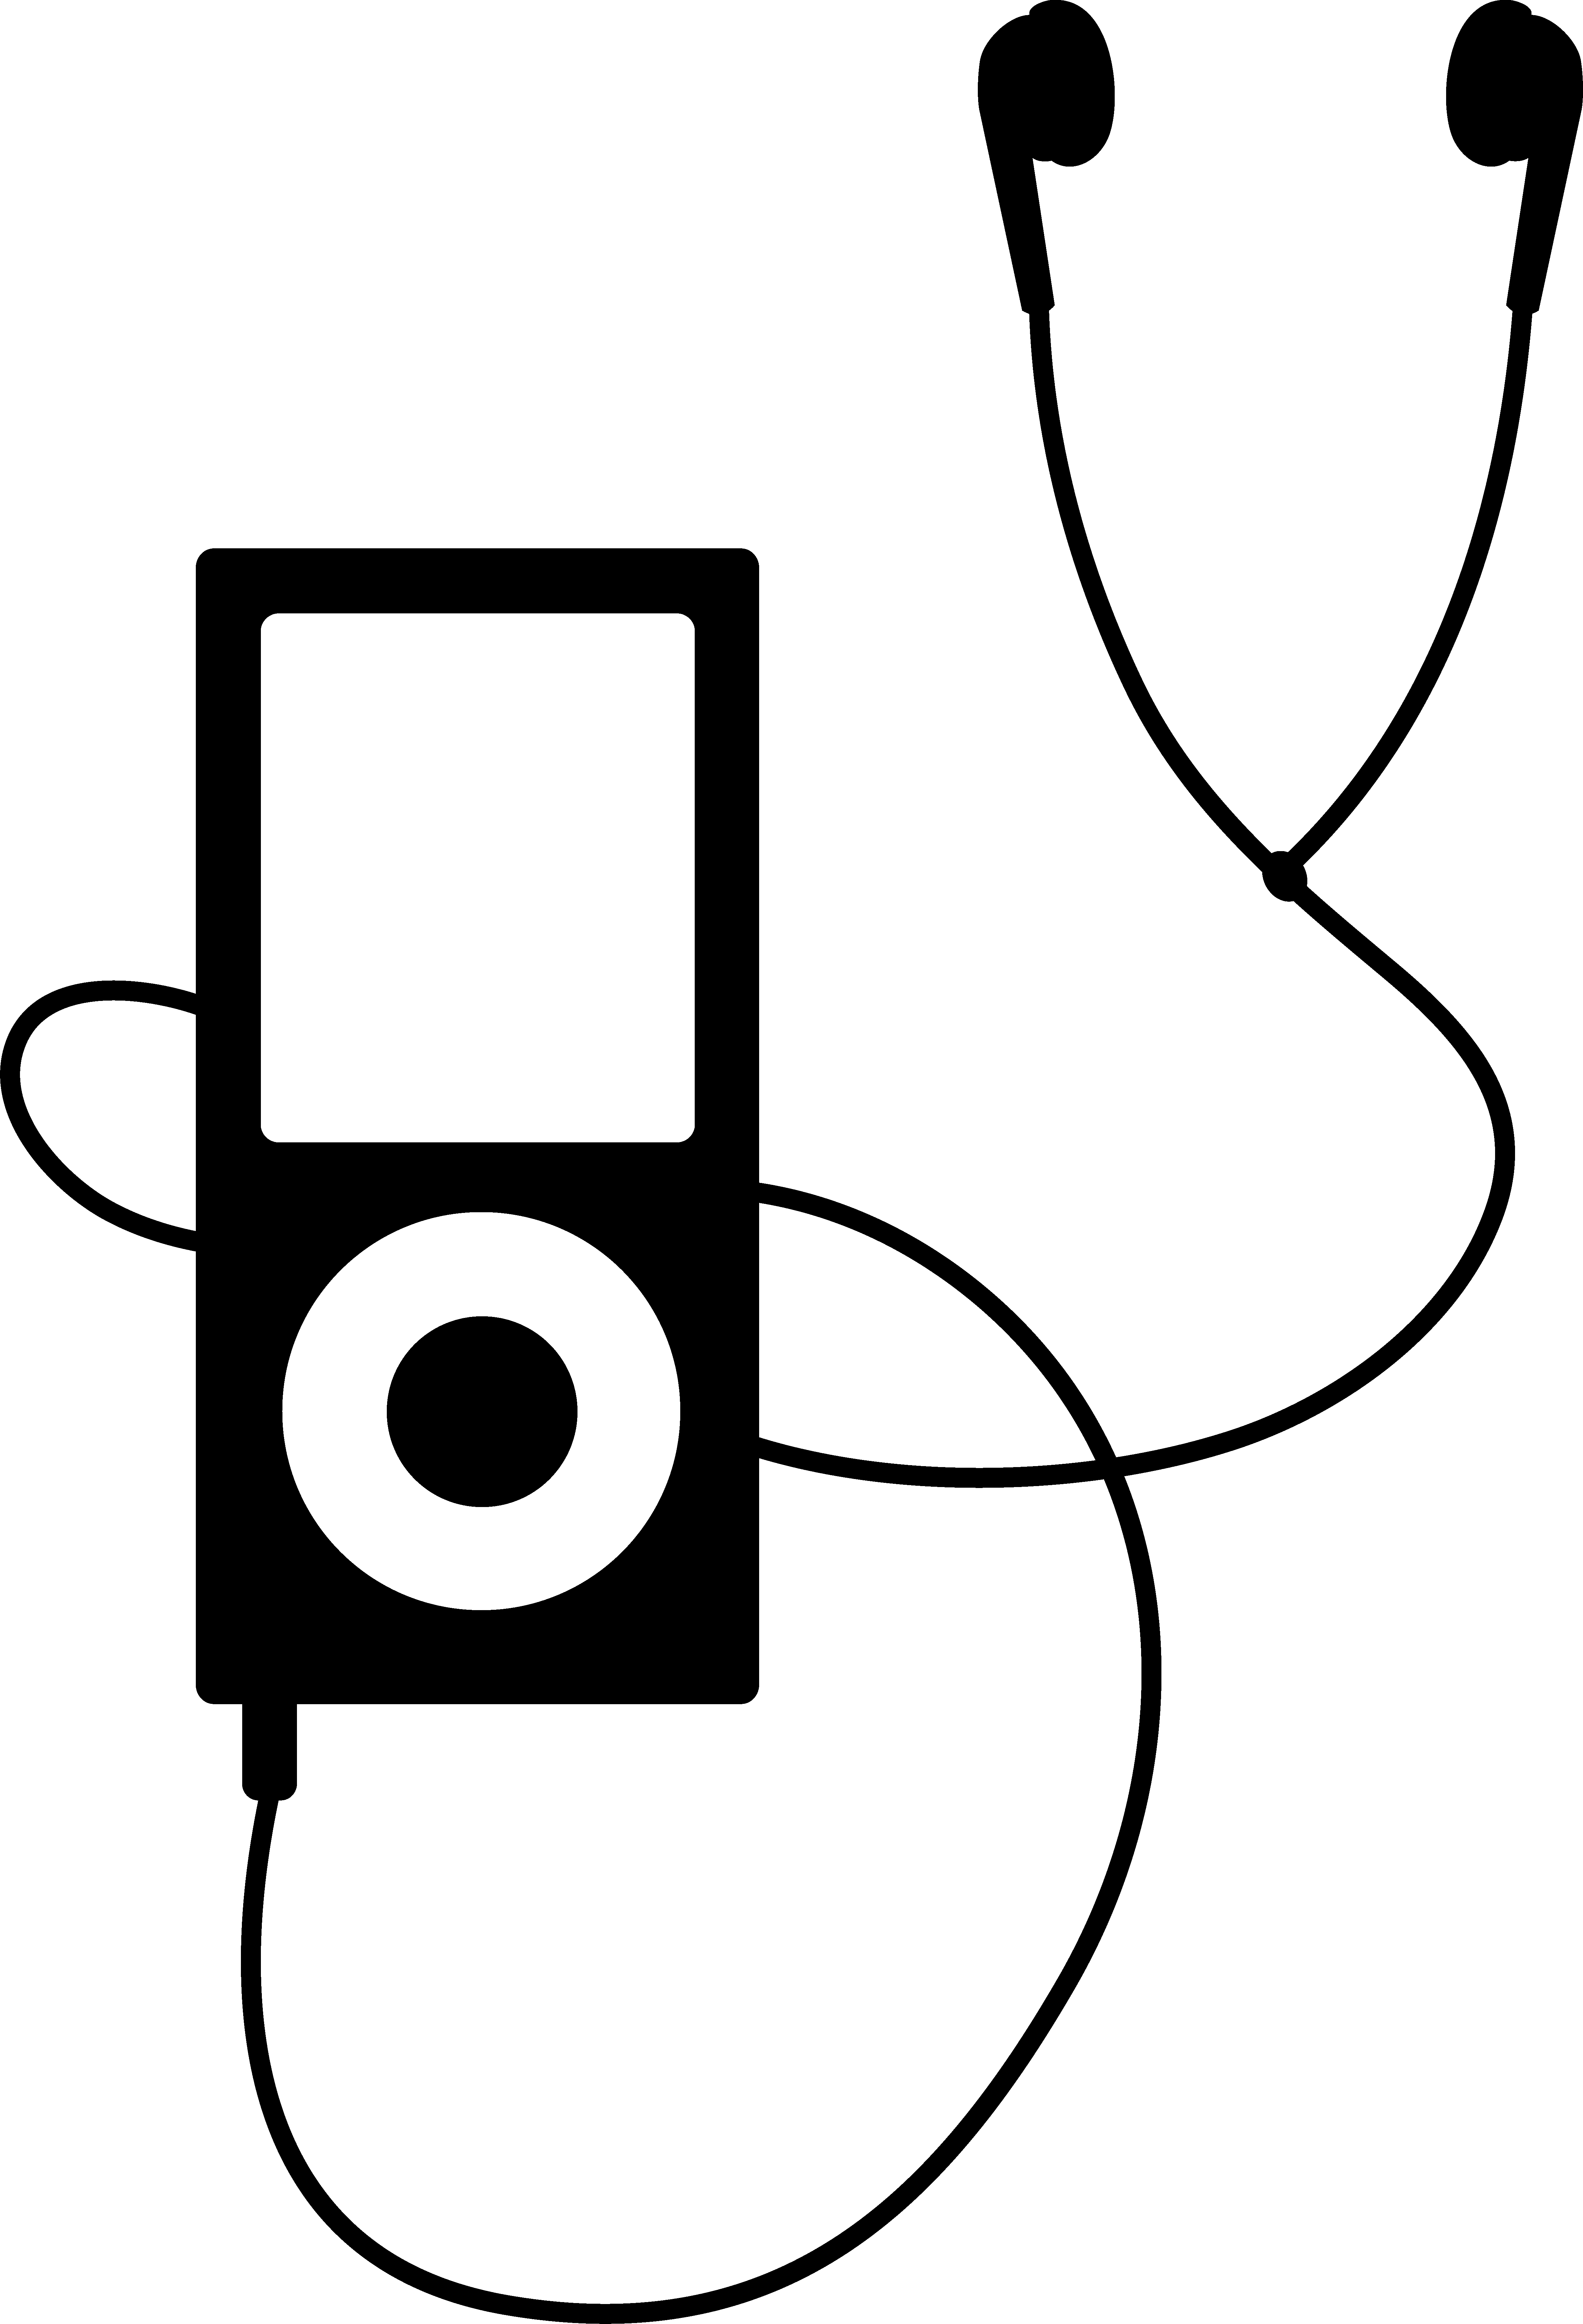 Earbuds vector draw. Drawing for free